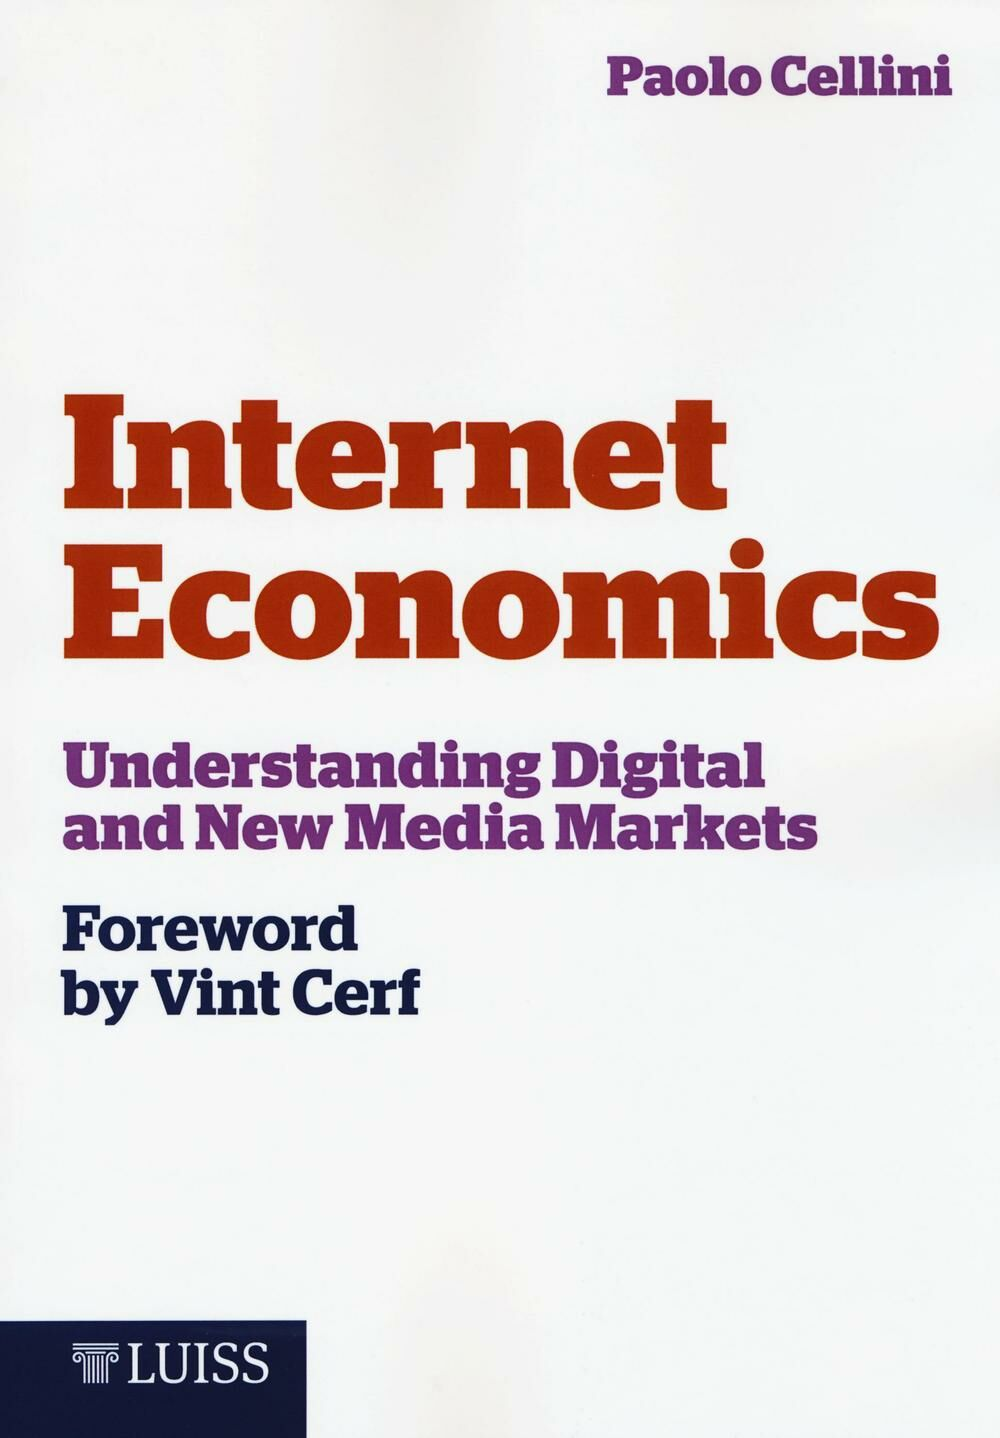 Internet economics. Understanding digital and new media markets